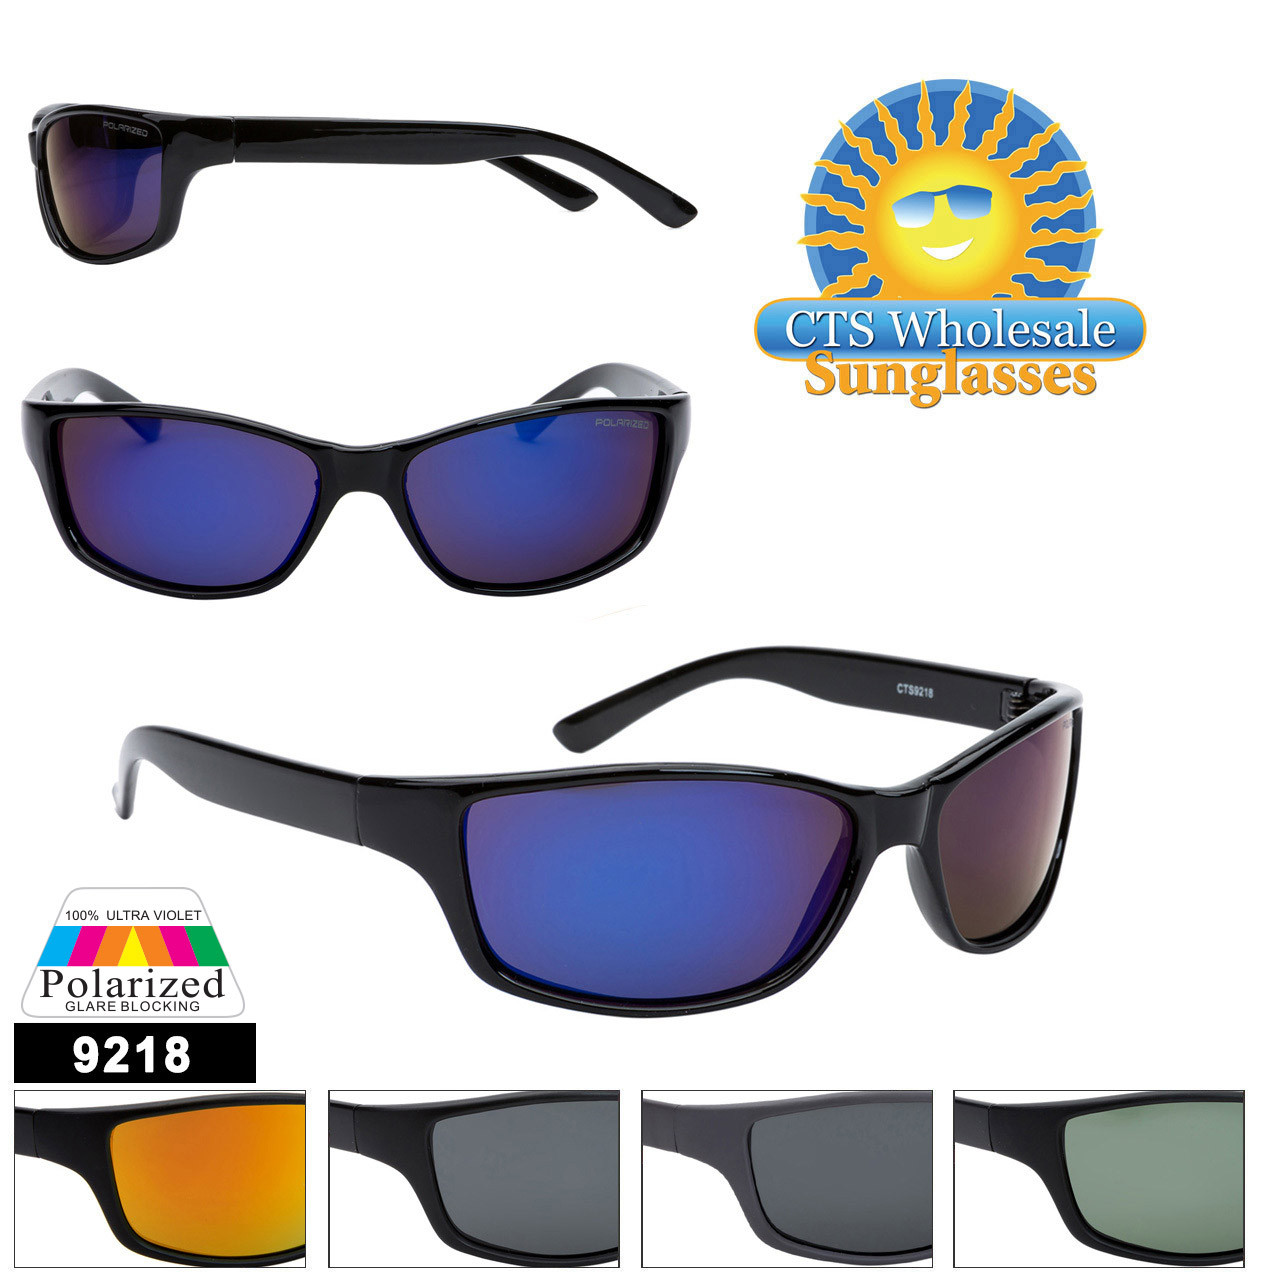 #9218 Polarized Unisex Sunglasses